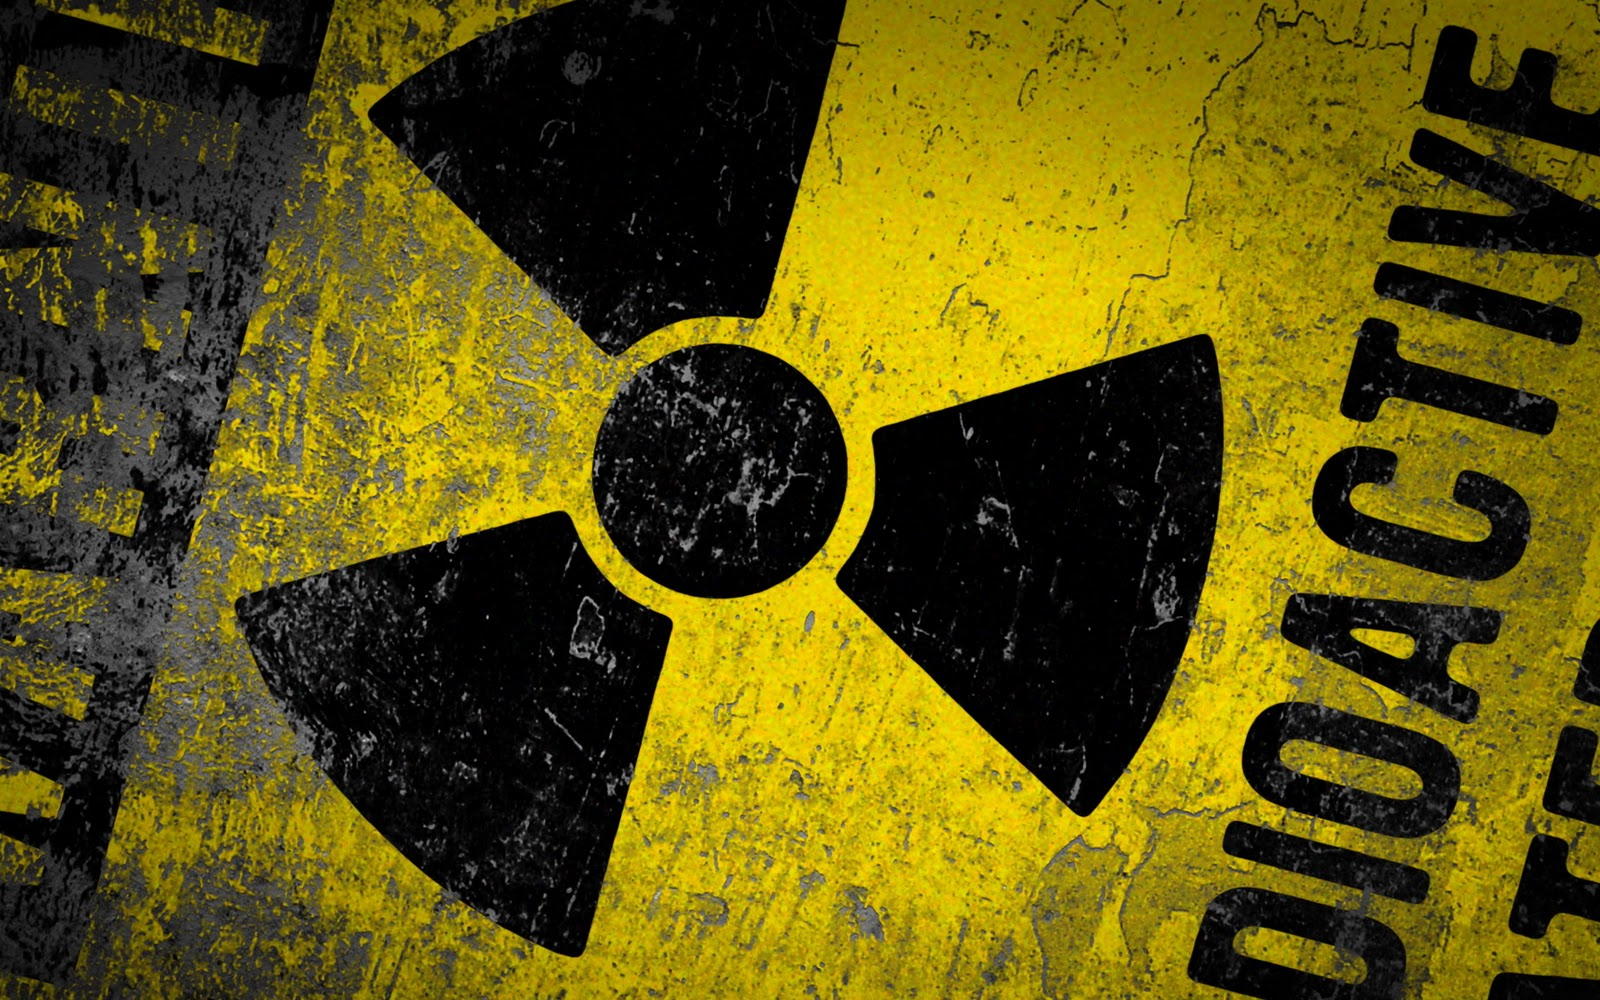 French Institute Says Radioactive Cloud Came From Russia Or